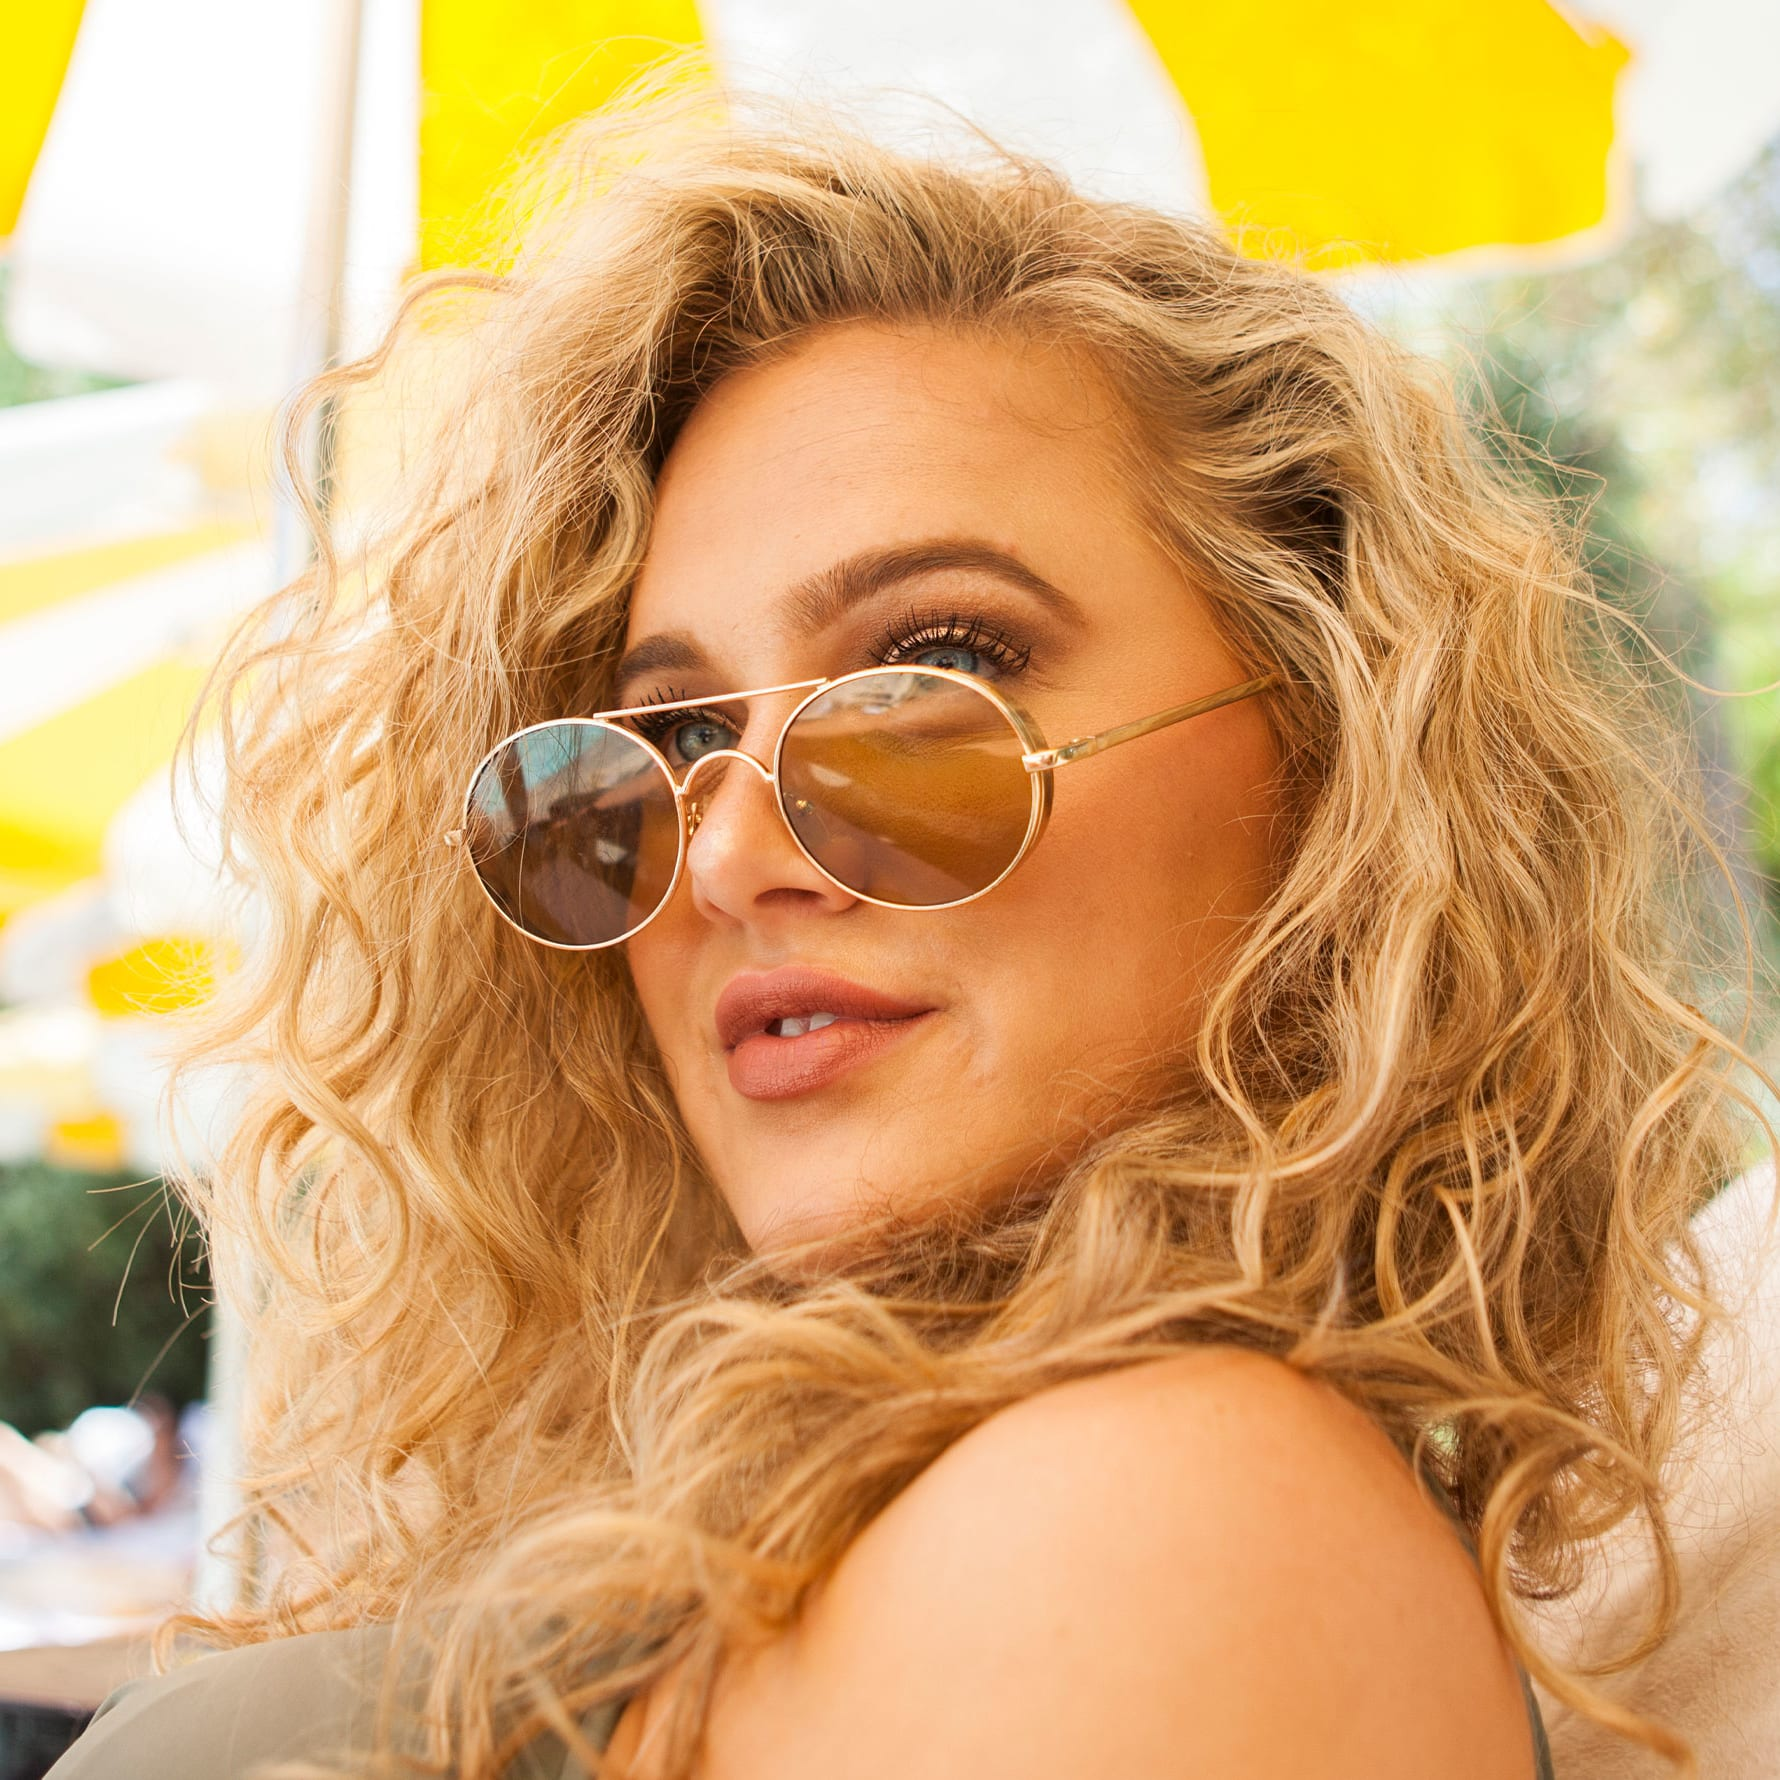 woman with sunglasses and blonde wavy hair